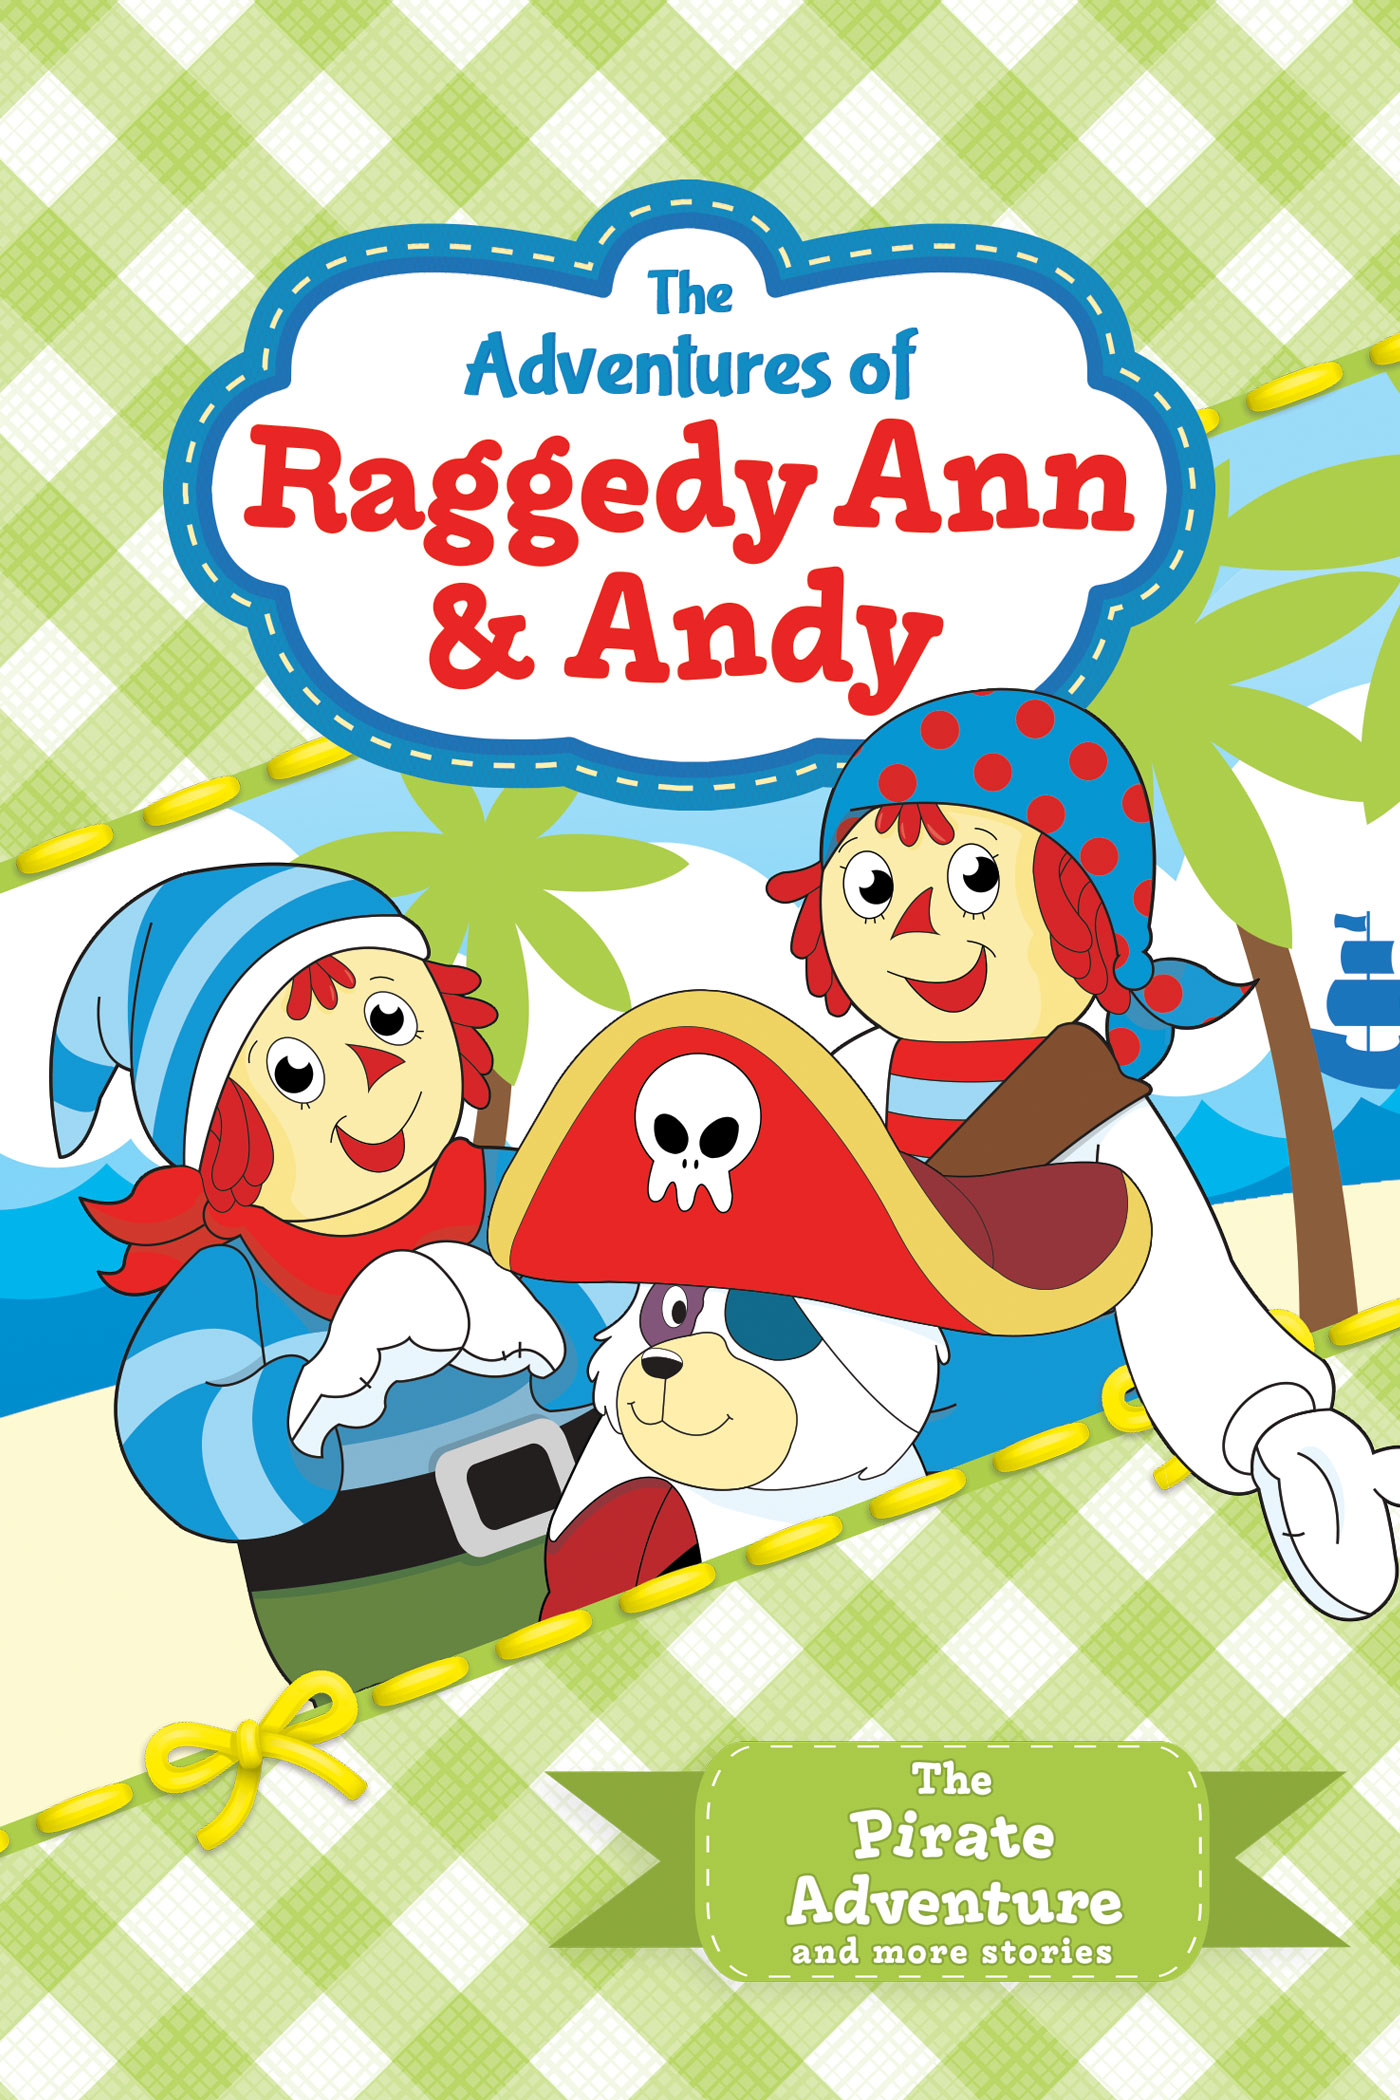 the adventures of raggedy ann u0026 andy the pirate adventure and